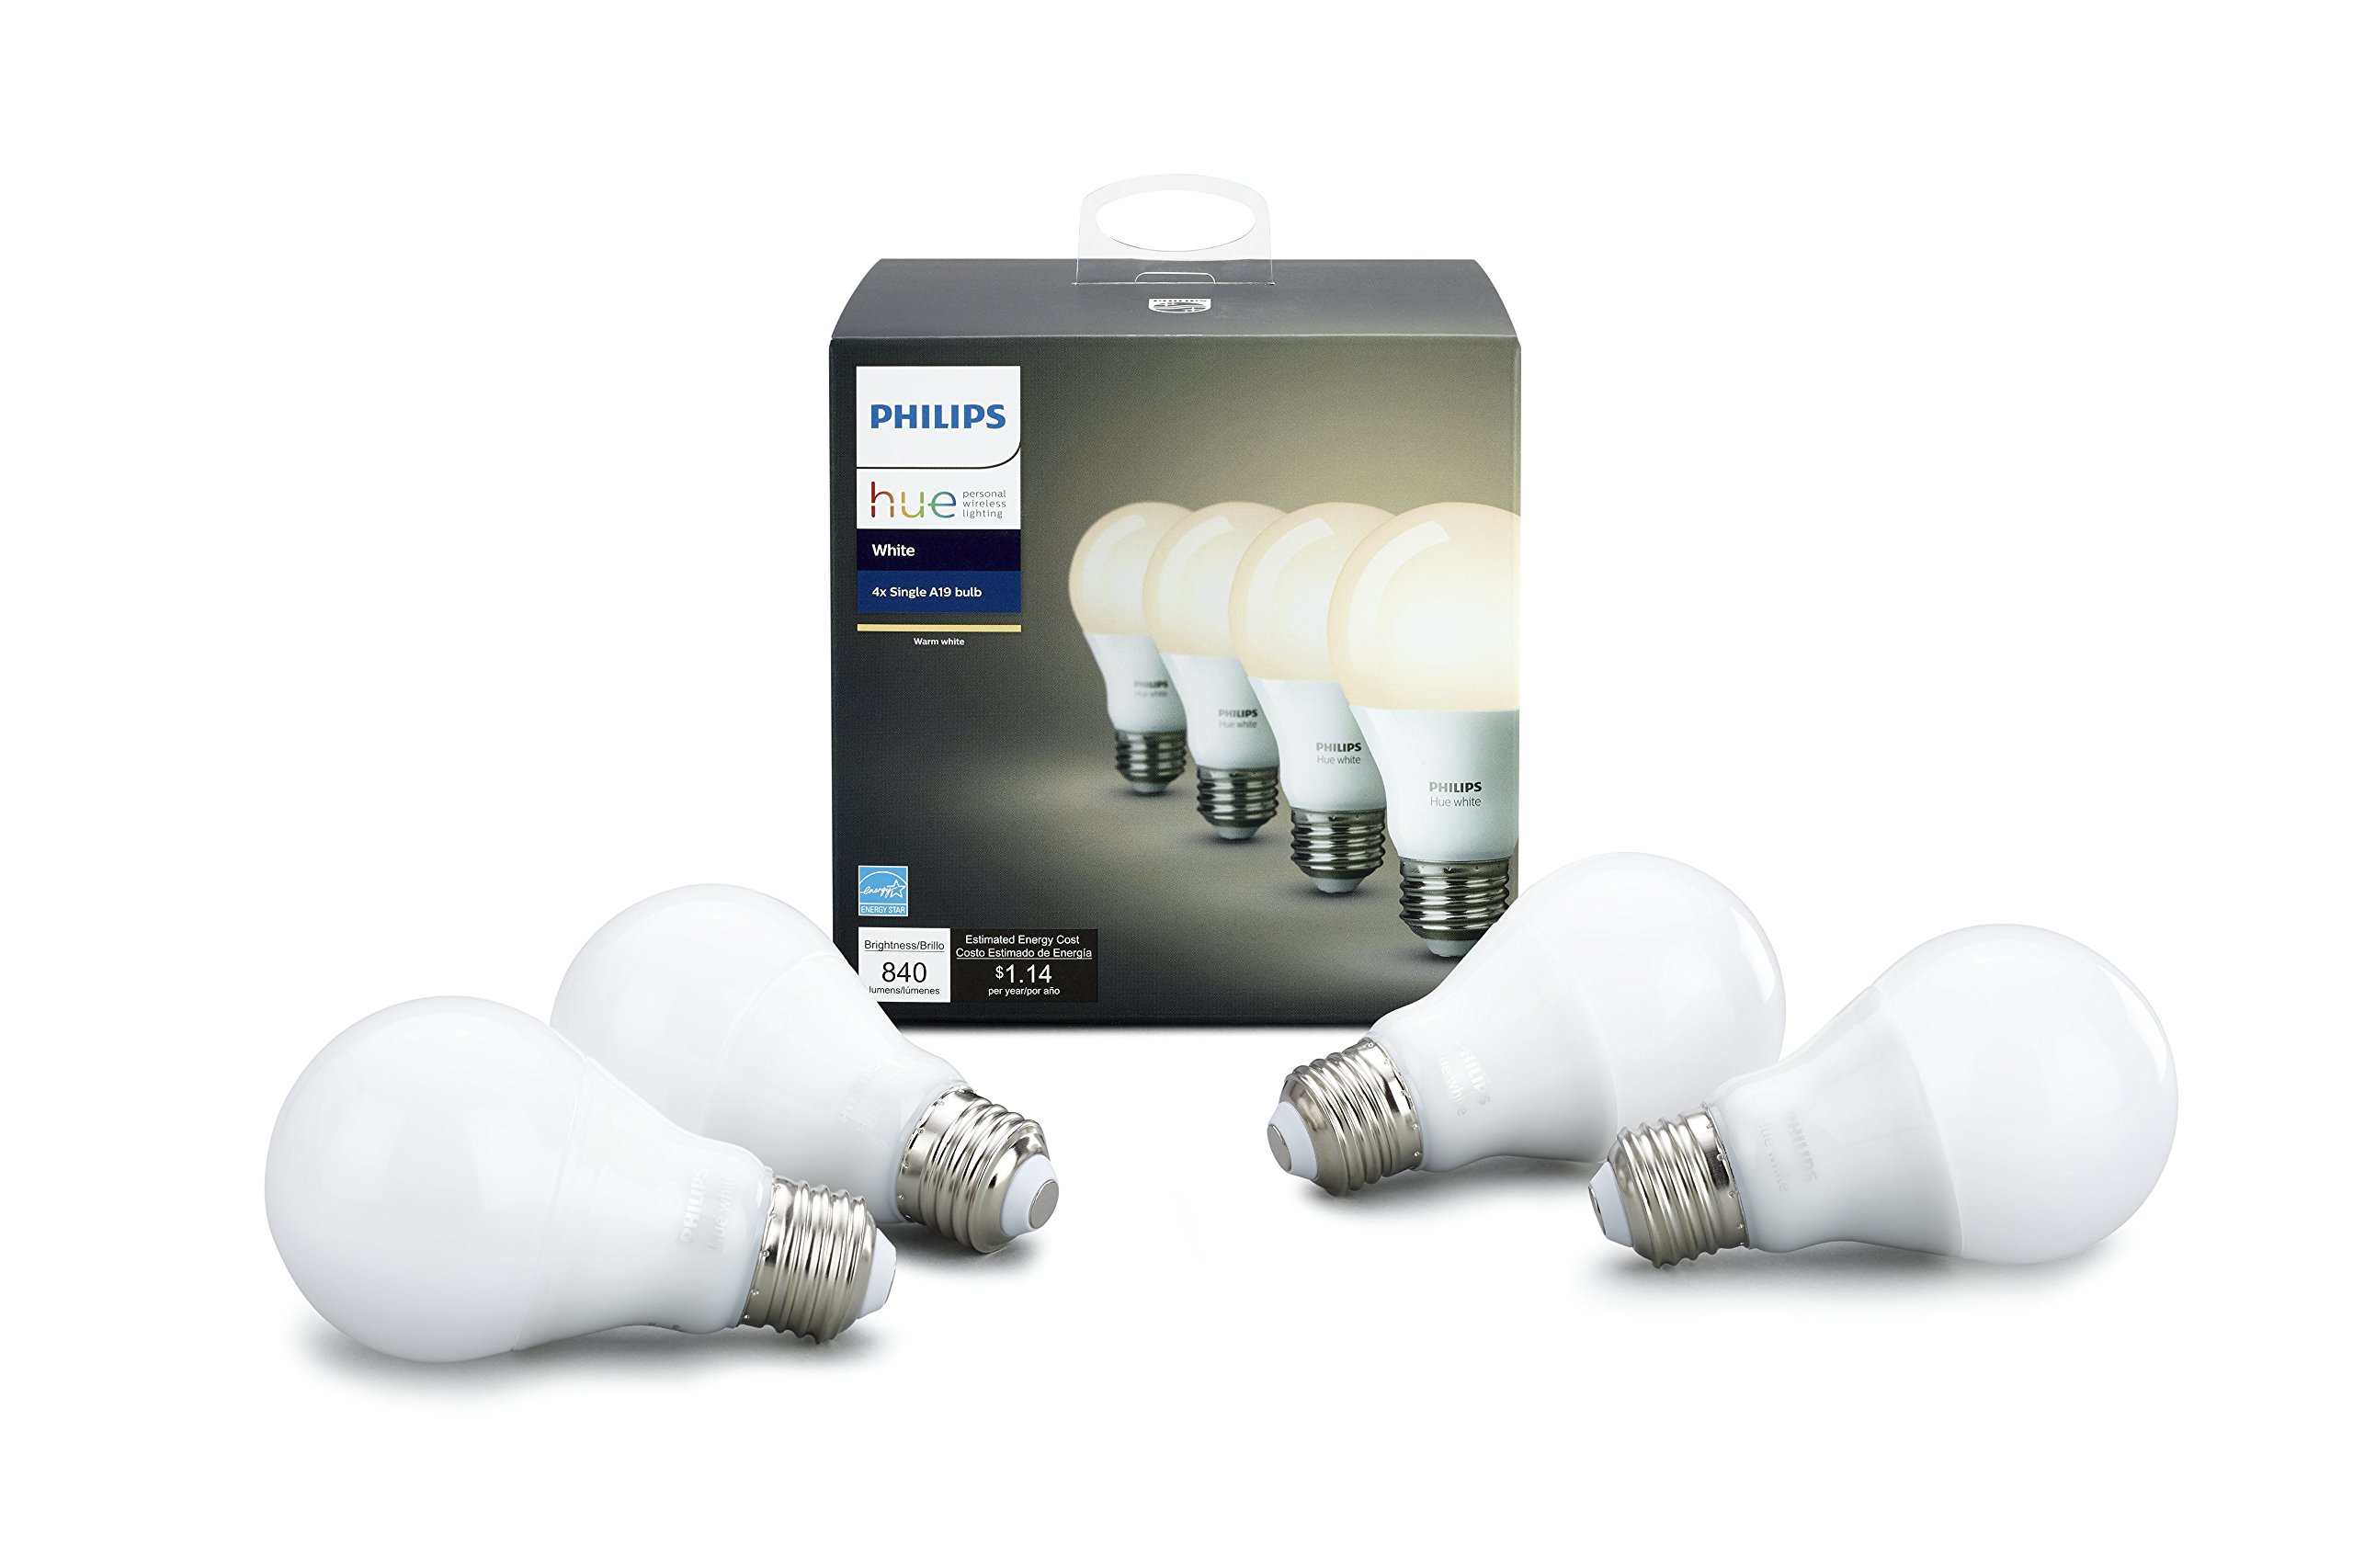 Hue White A19 4 Pack (Compatible with Amazon Alexa, Apple Home Kit and Google Assistant) product image